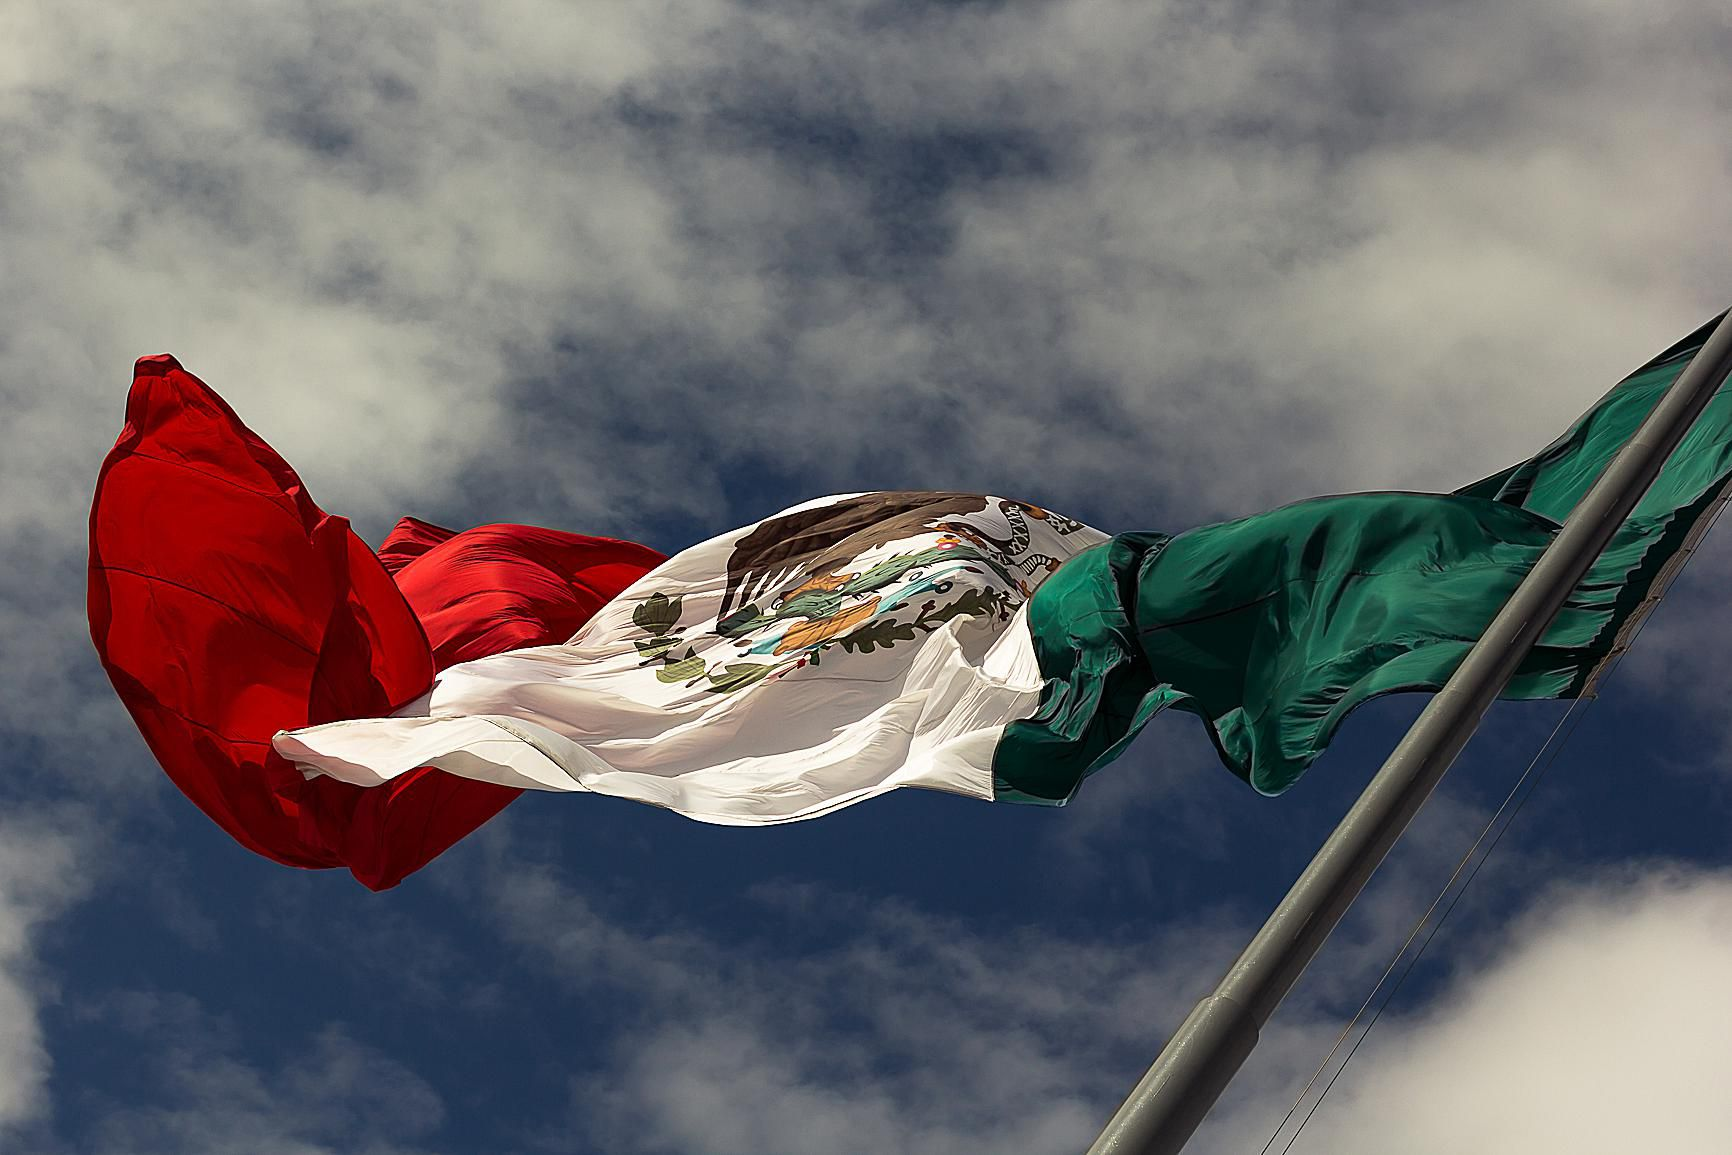 10 facts about mexico for spanish students